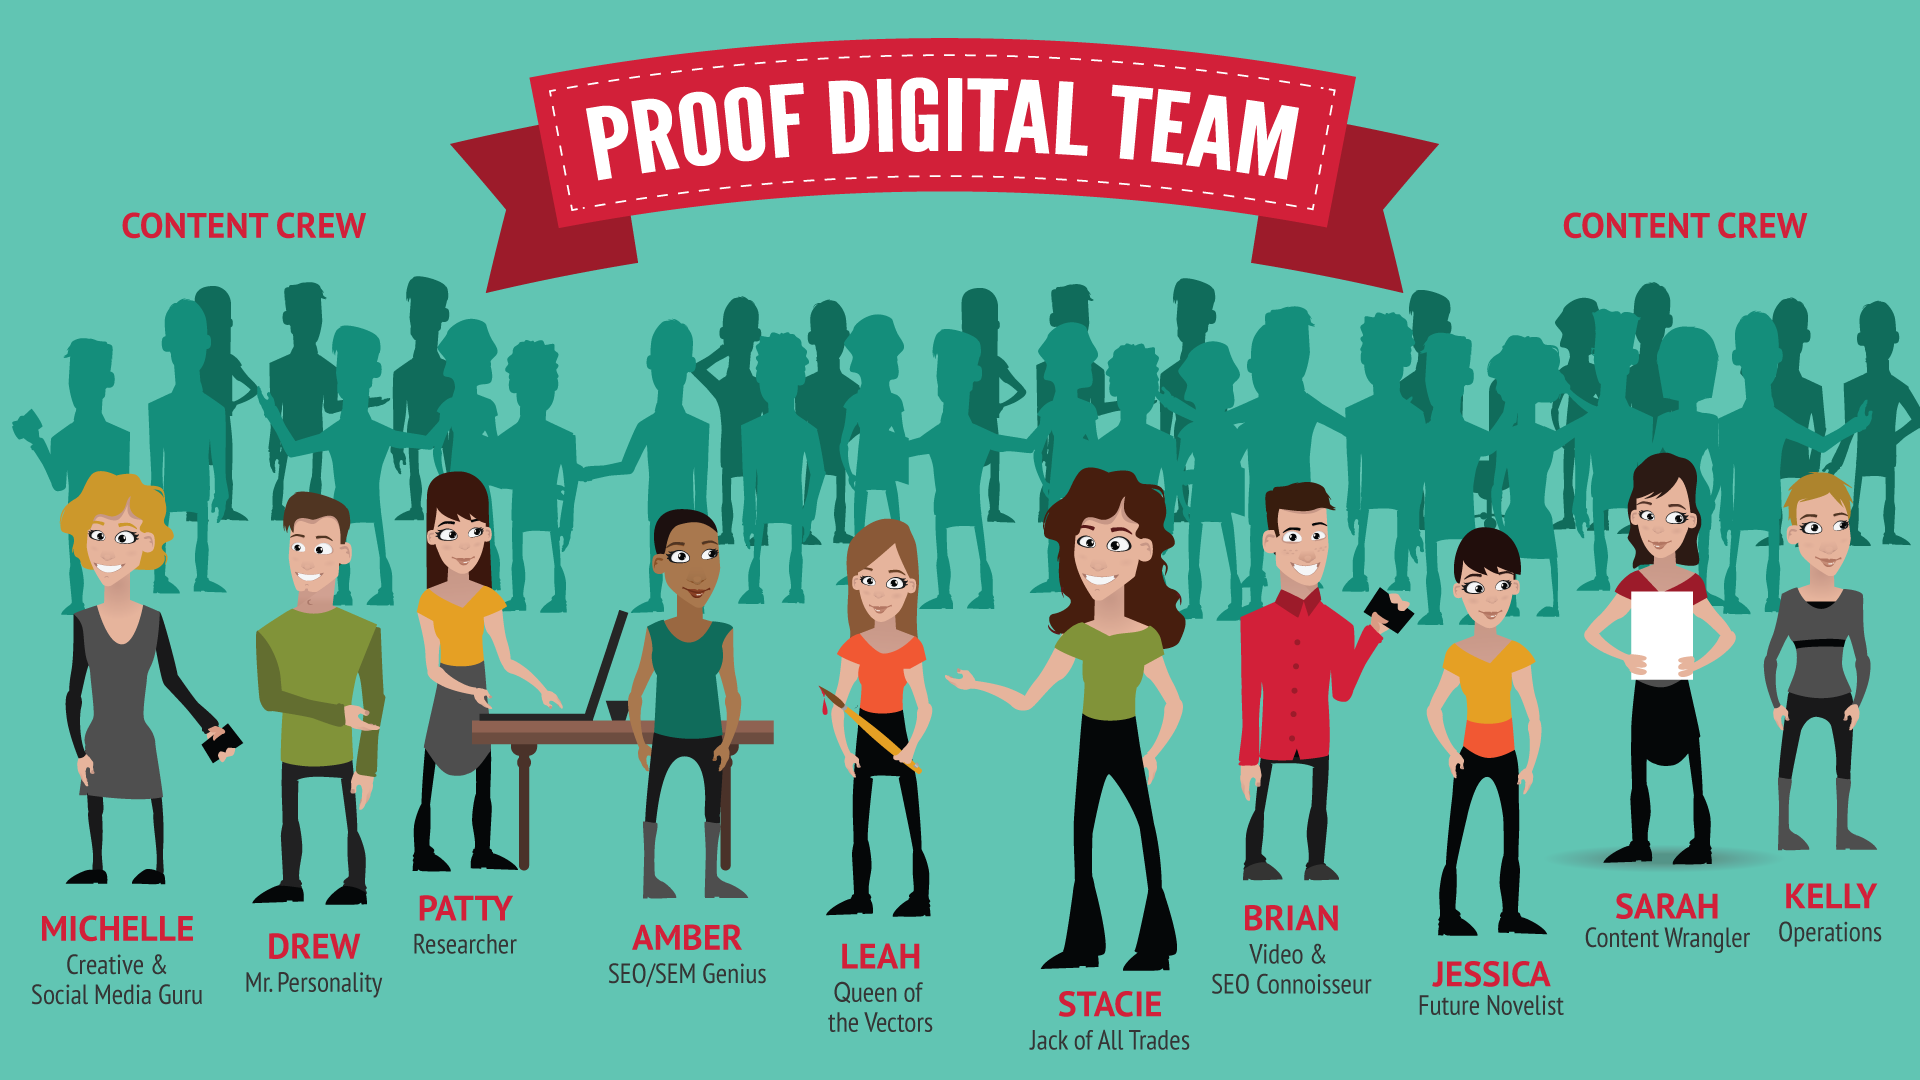 TeamProofDigital